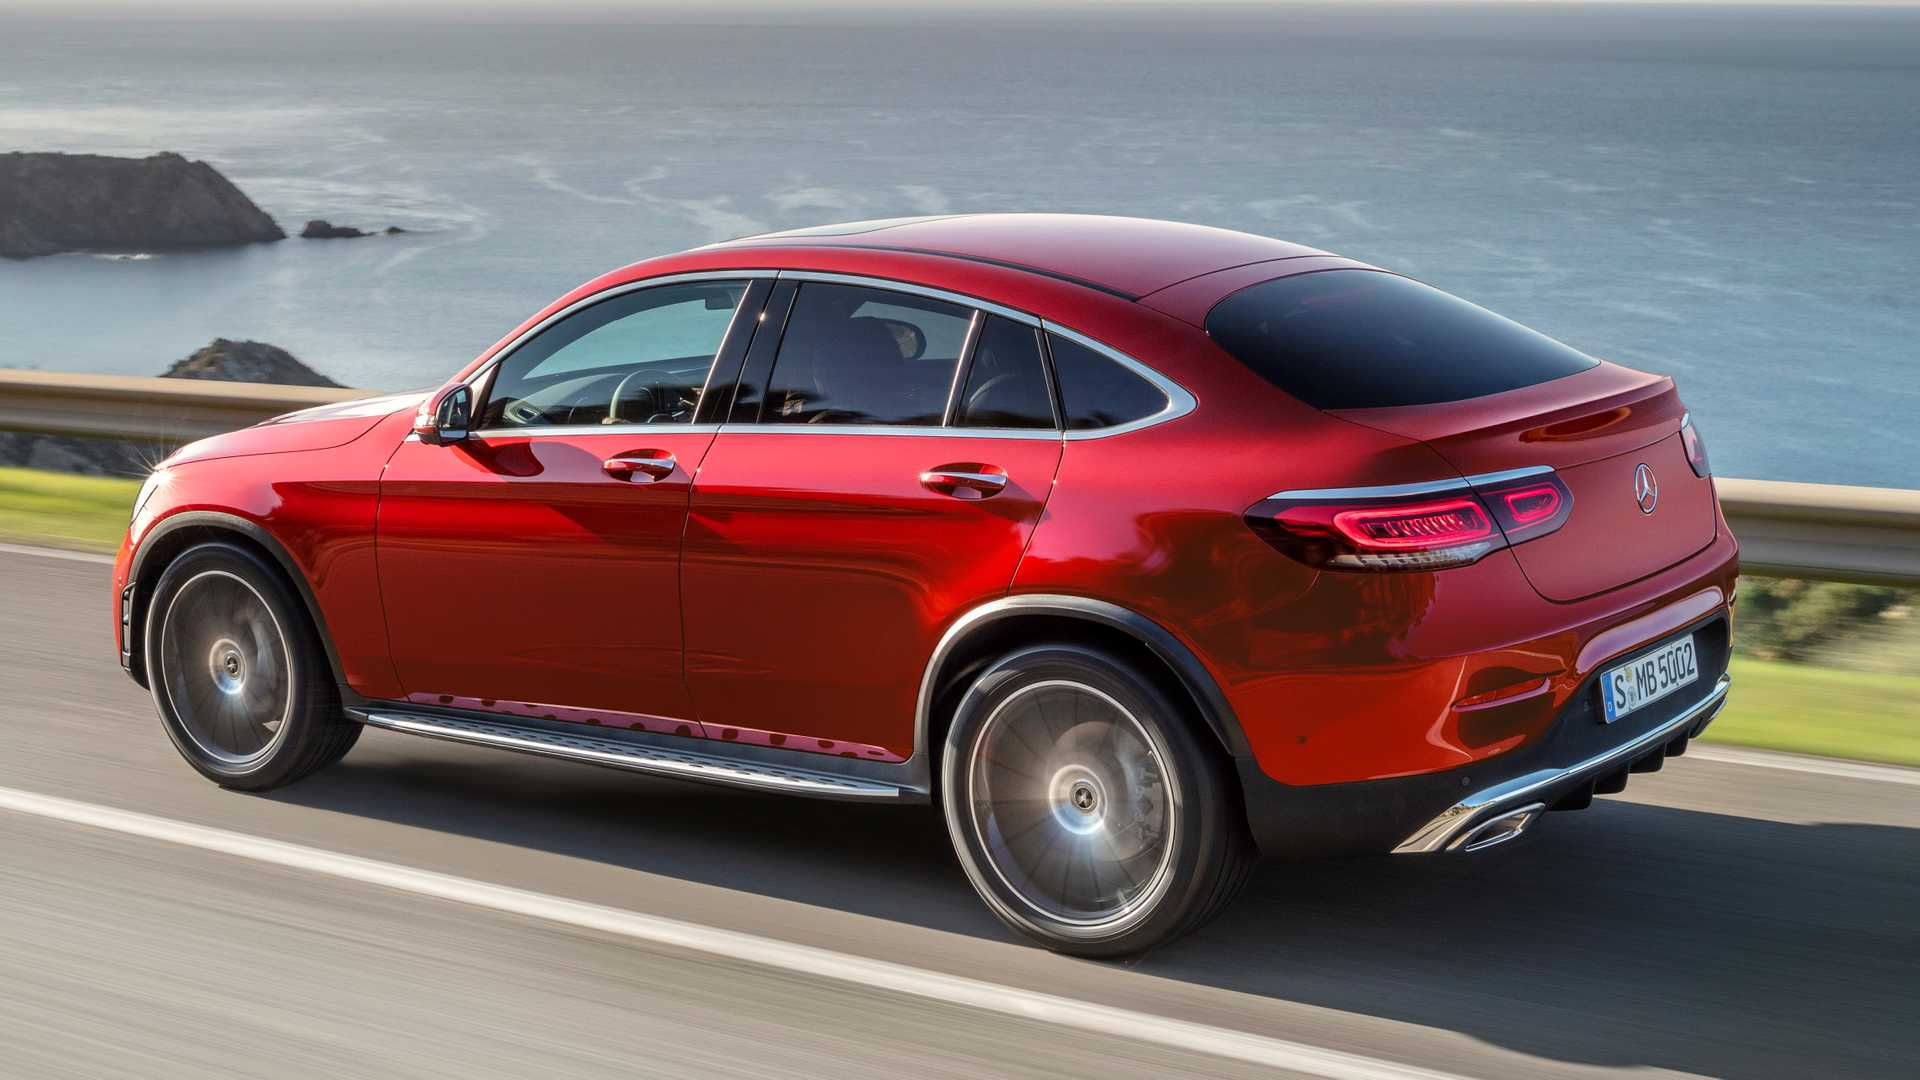 2020 Mercedes-Benz GLC Coupe Gets Refreshed Face, More ...